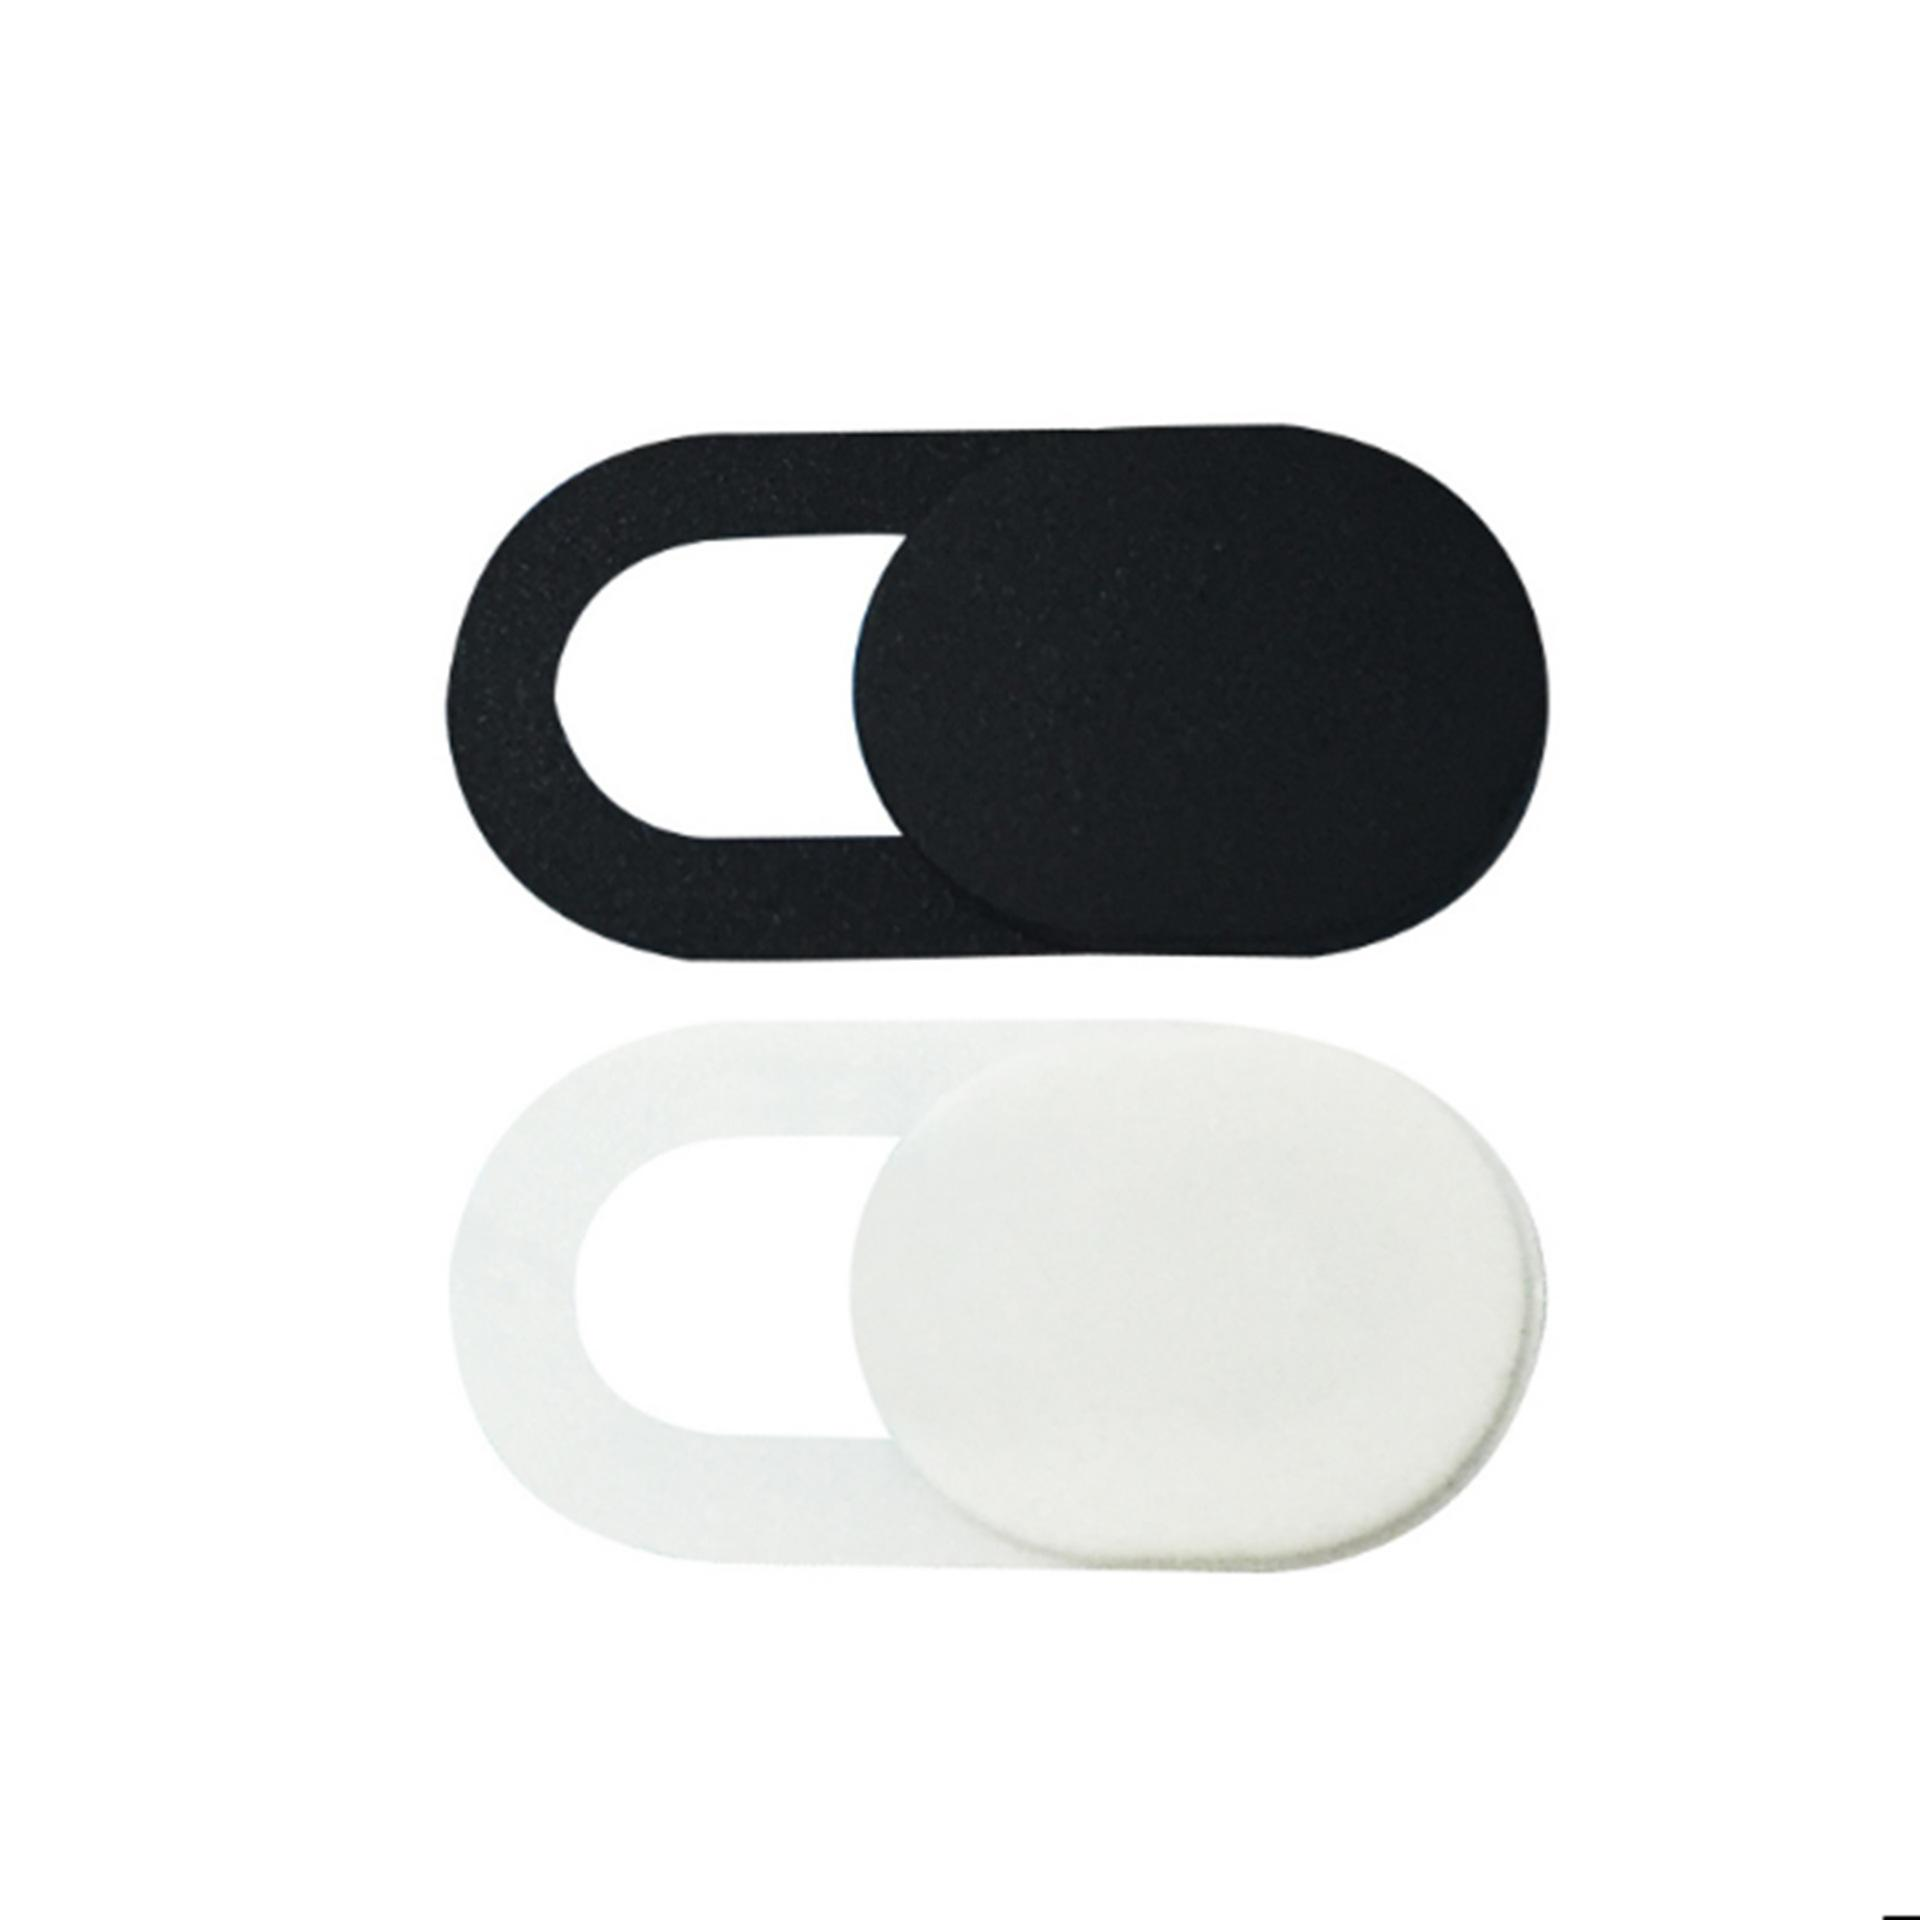 Webcam Cover Slider Laptops Camera Cover Shutter Web Cam Magnetic Cover Curtain For Camera Phone PC Macbook Tablet